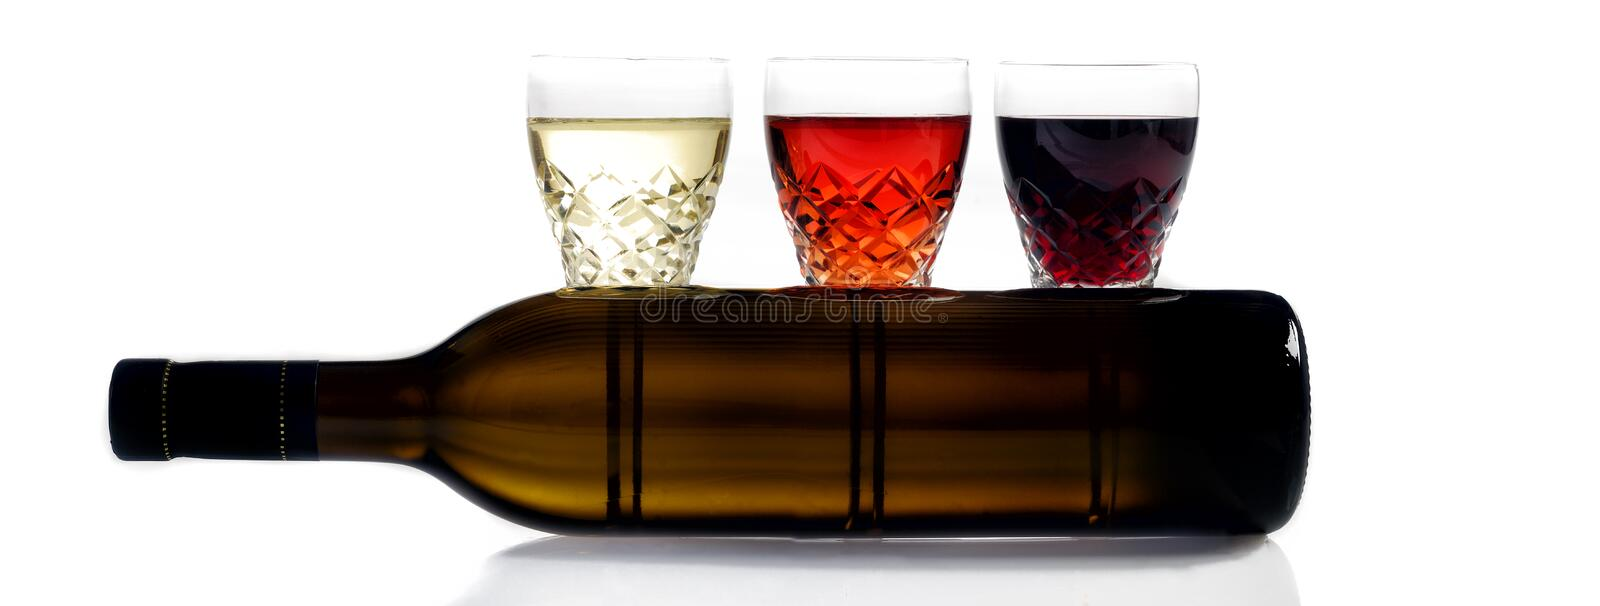 Three glasses of wine, glass, white wine, red wine, rose wine, white background, bottle of wine stock images